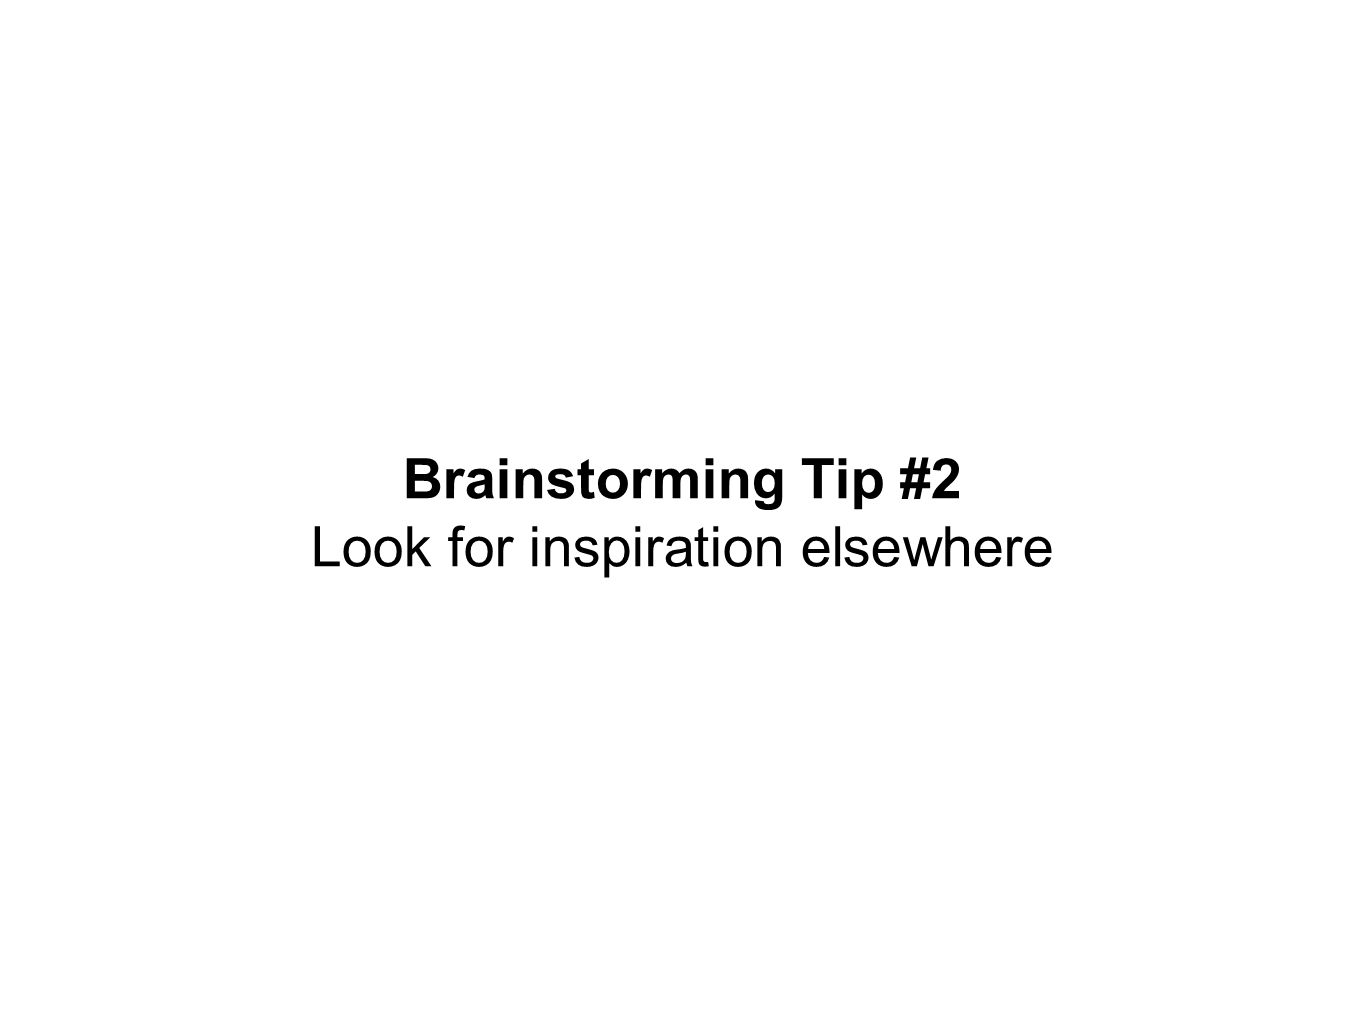 Brainstorming Tip #2 Look for inspiration elsewhere